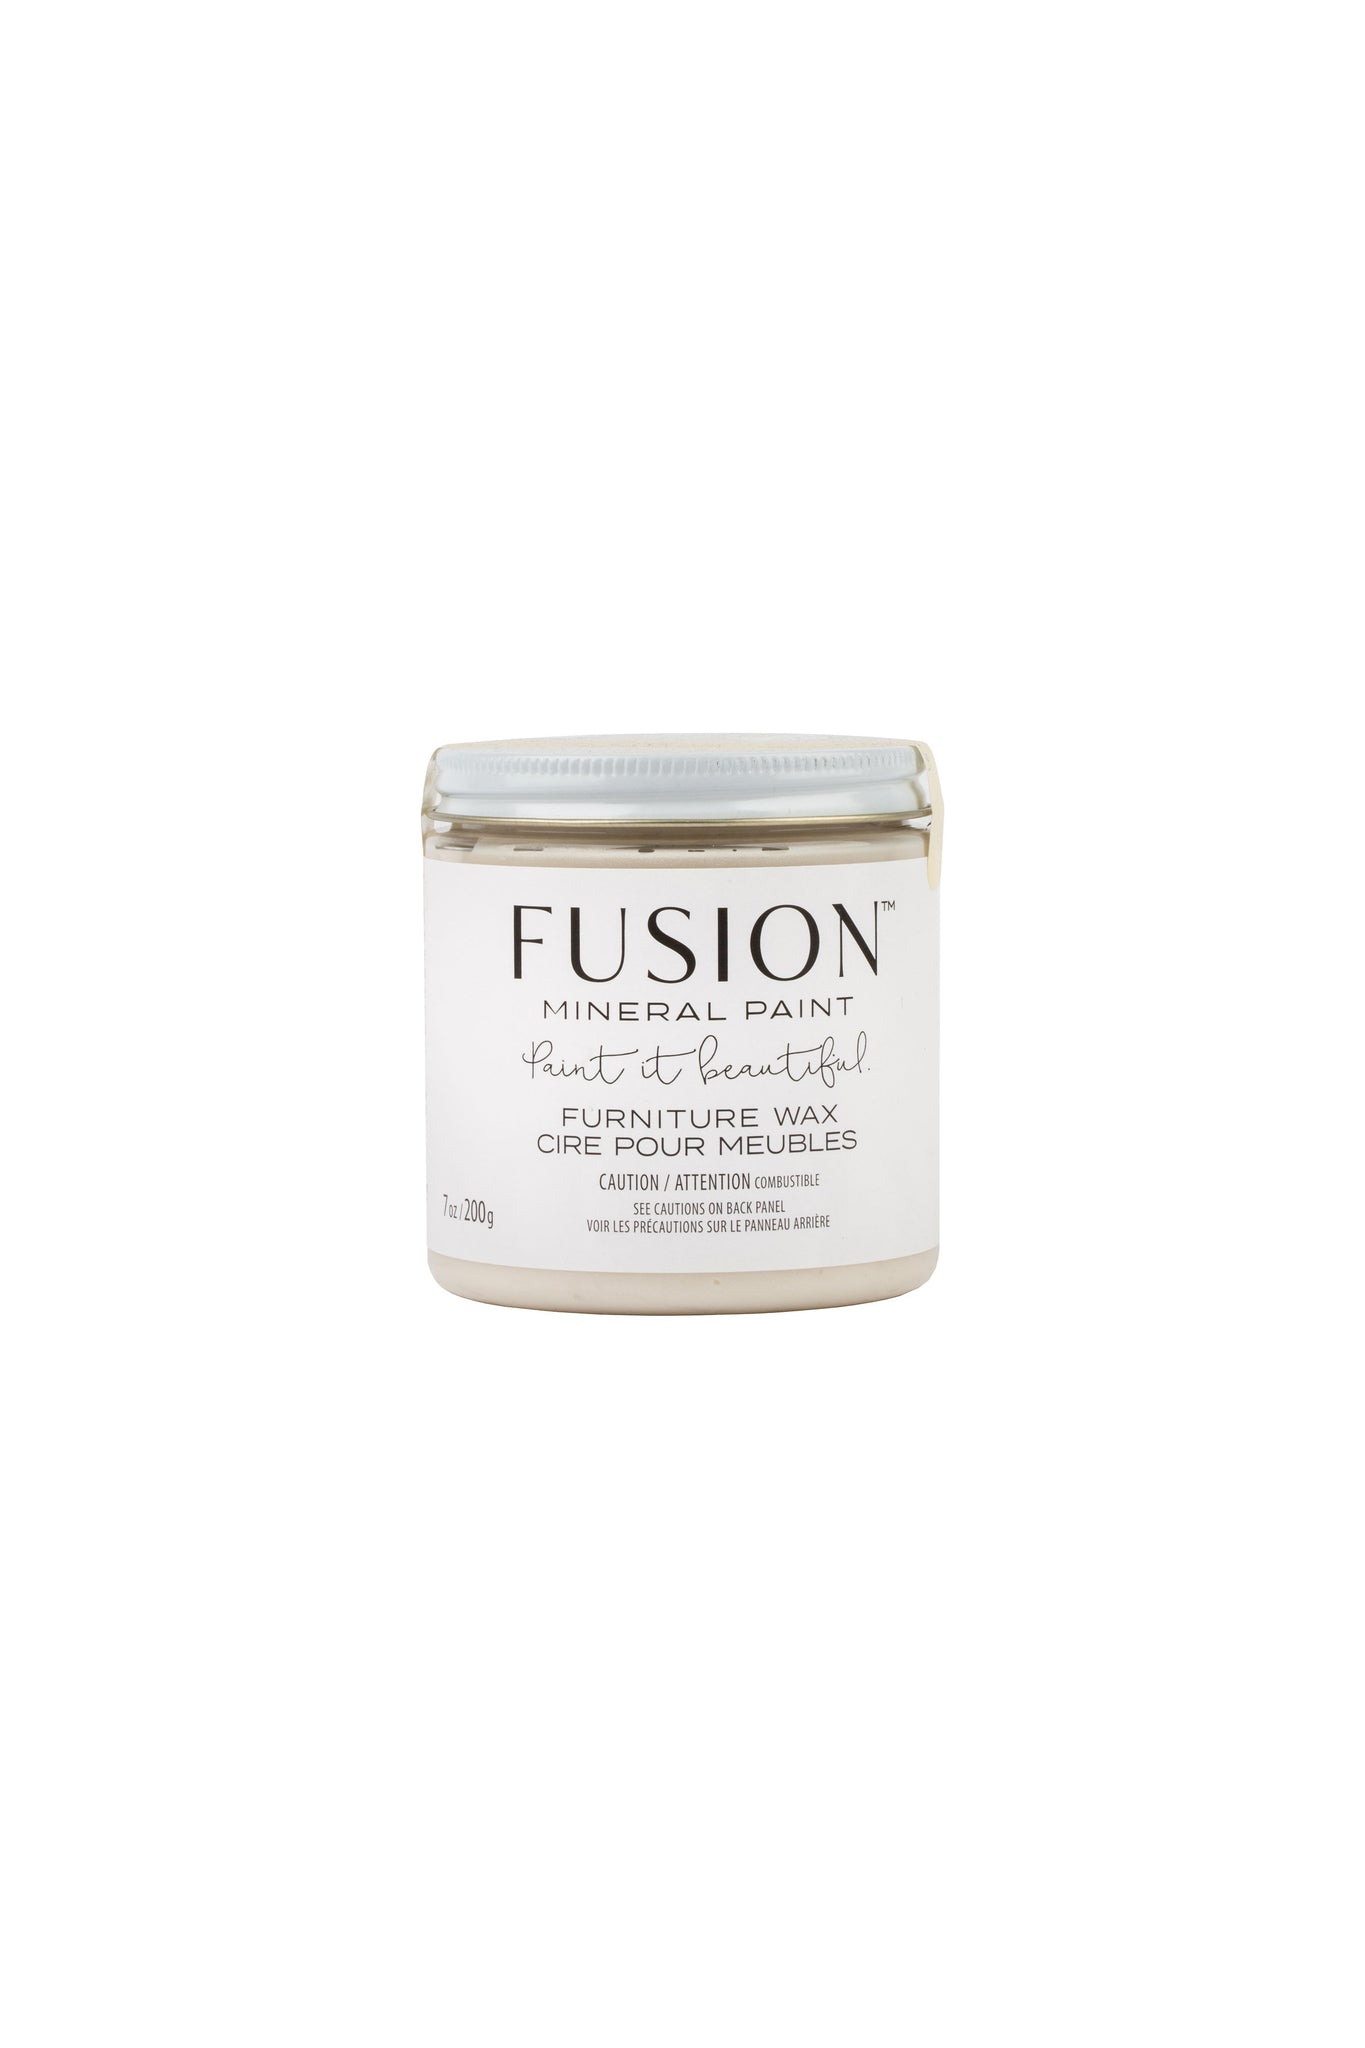 Furniture Wax - Clear with Lavender scent